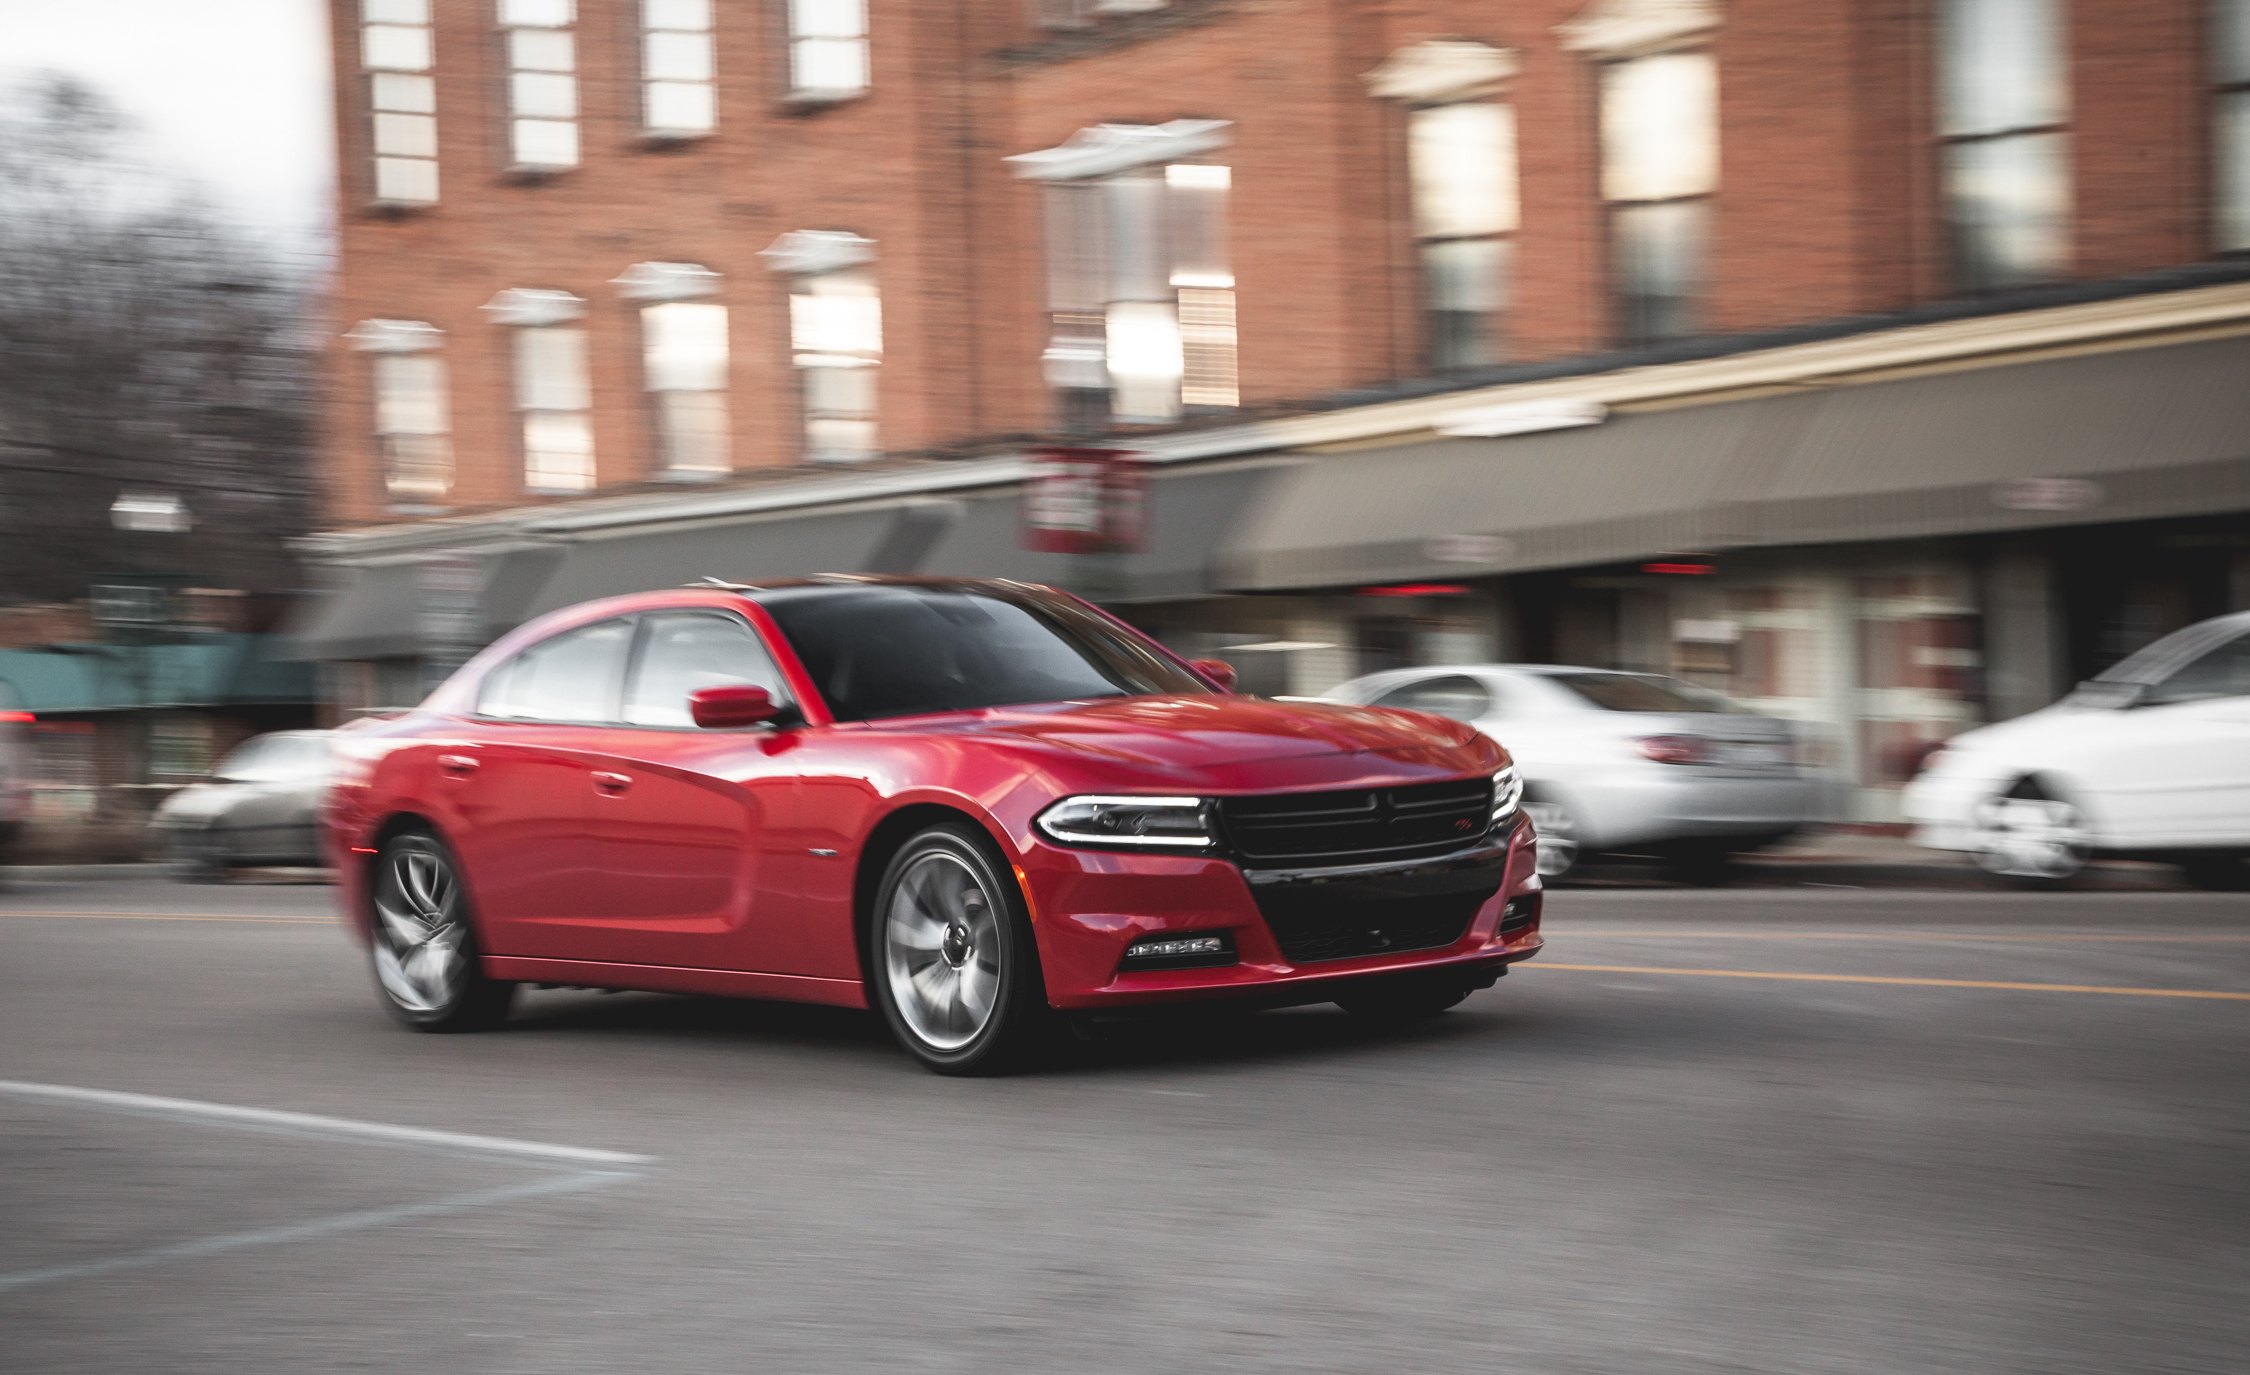 2015 Dodge Charger R/T Test Drive